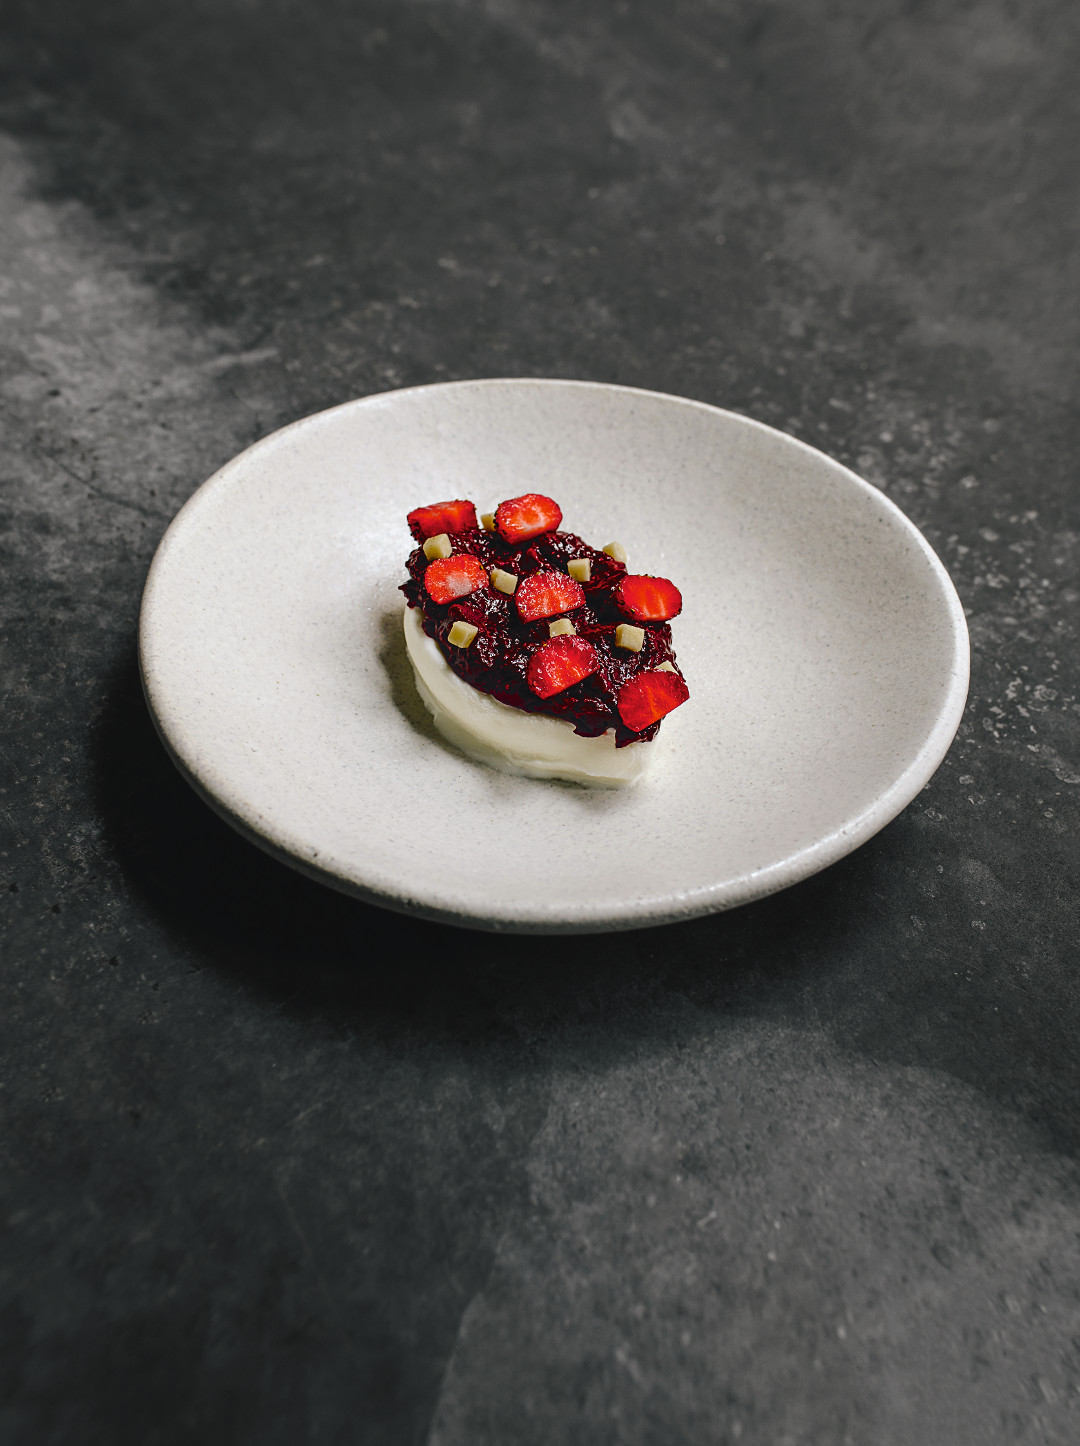 Strawberry, lavender, from A Very Serious Cookbook. Photo by Matty Yangwoo Kim